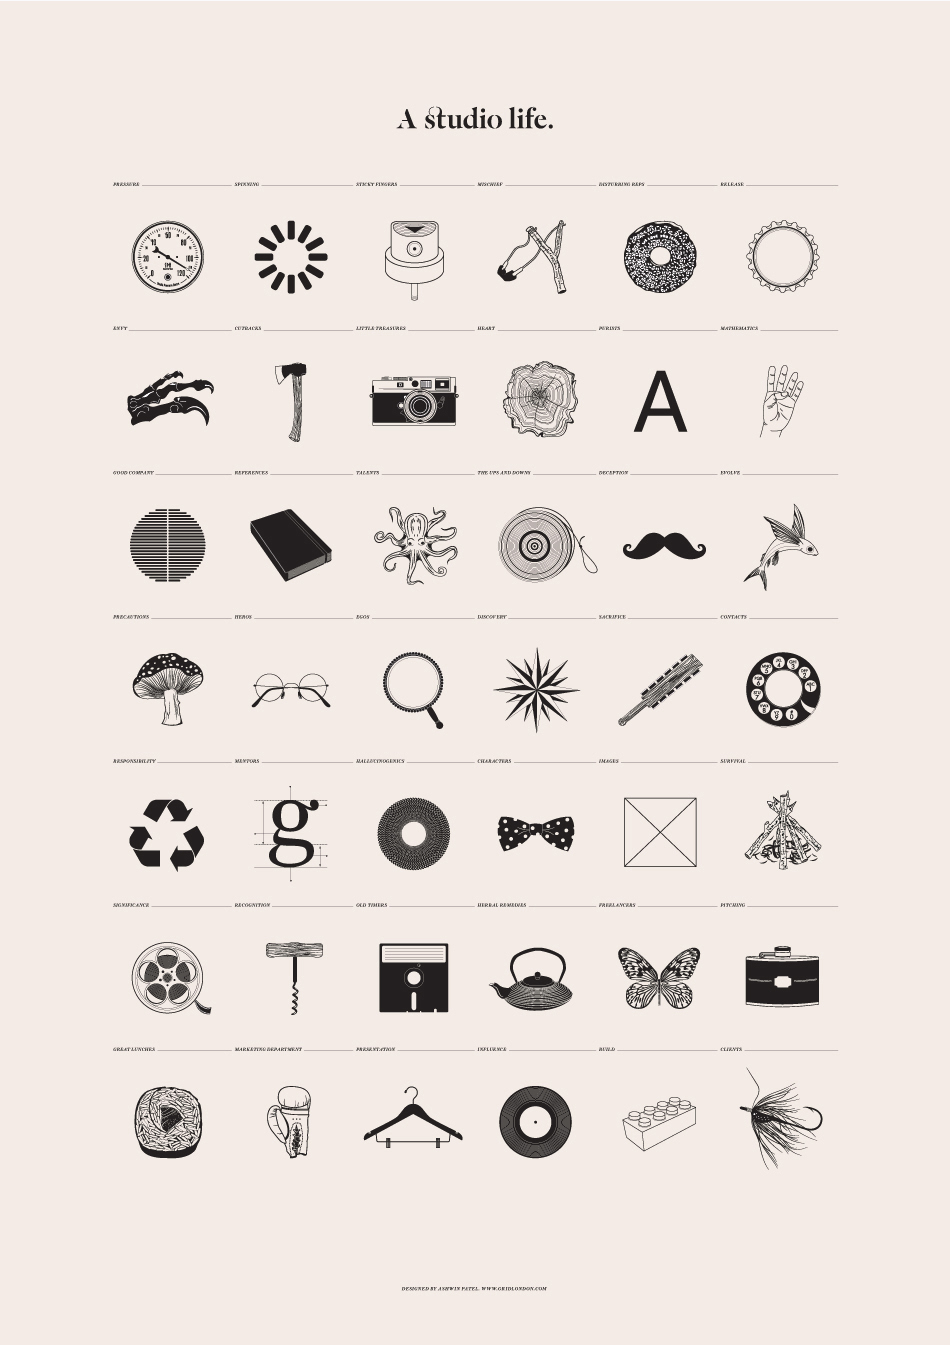 Poster design tools - In Minimalistic Poster Designer Outlines The Typical Life Of A Design Studio